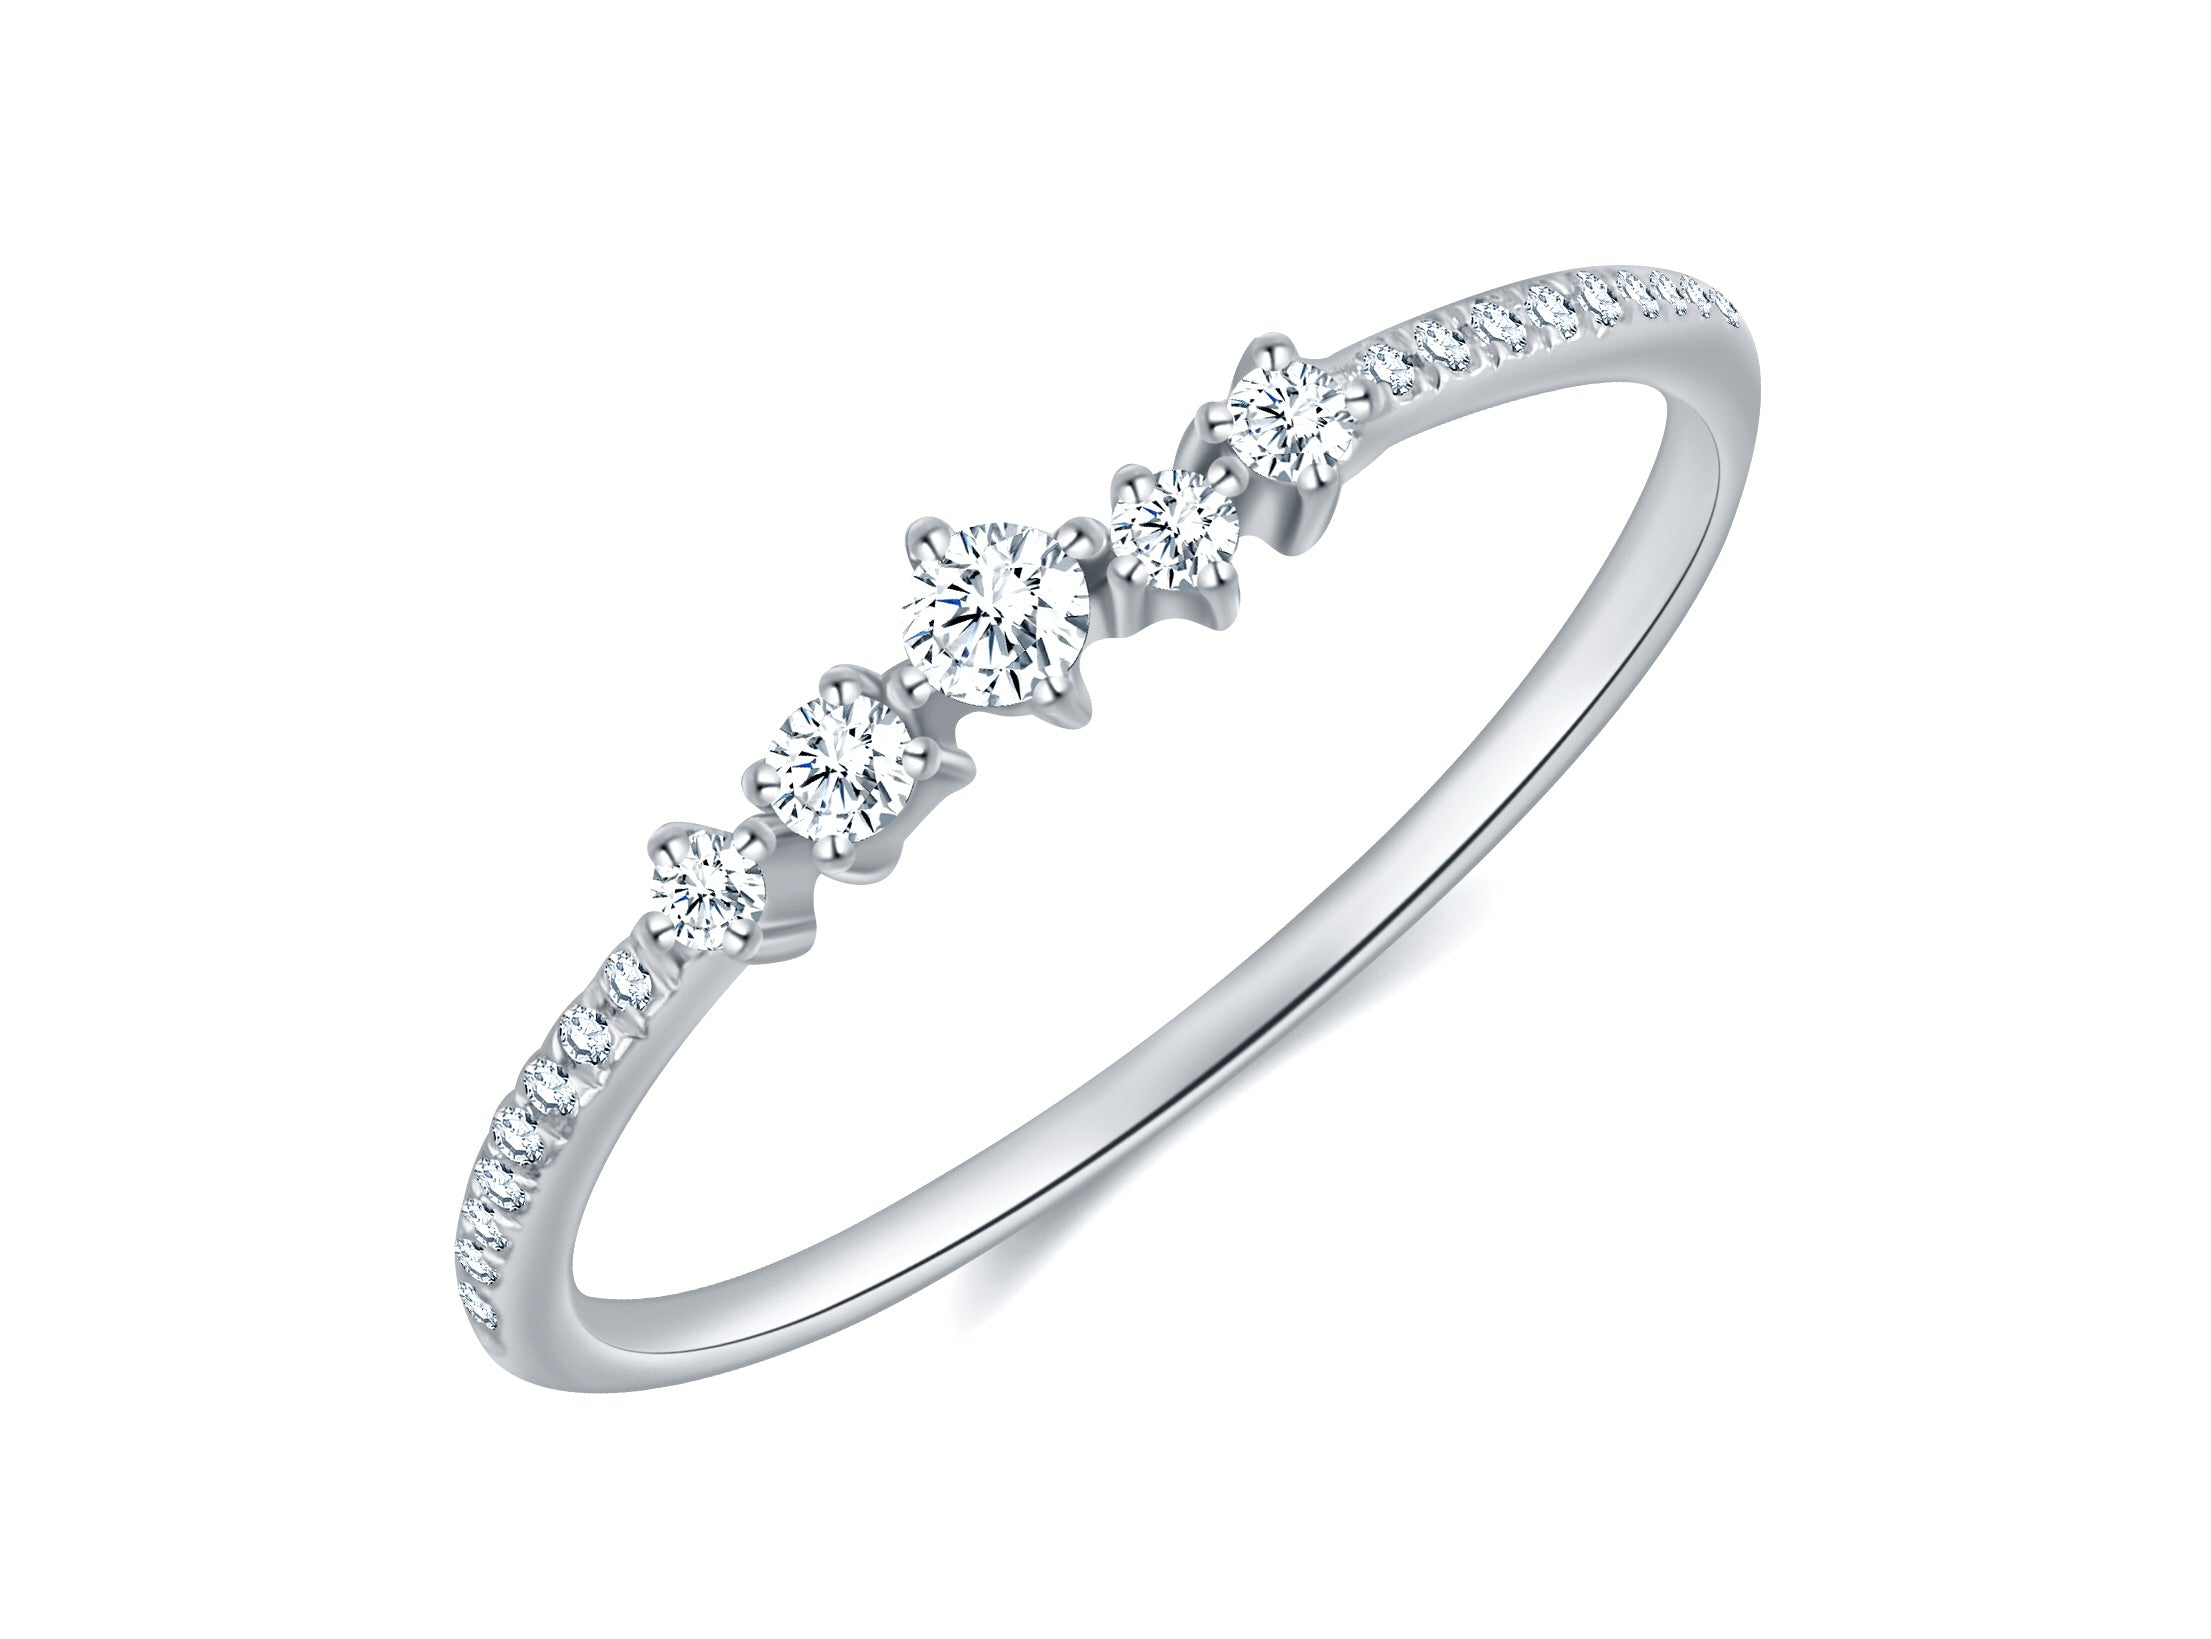 14K White Gold Diamond Stacking Band - Ice Motif